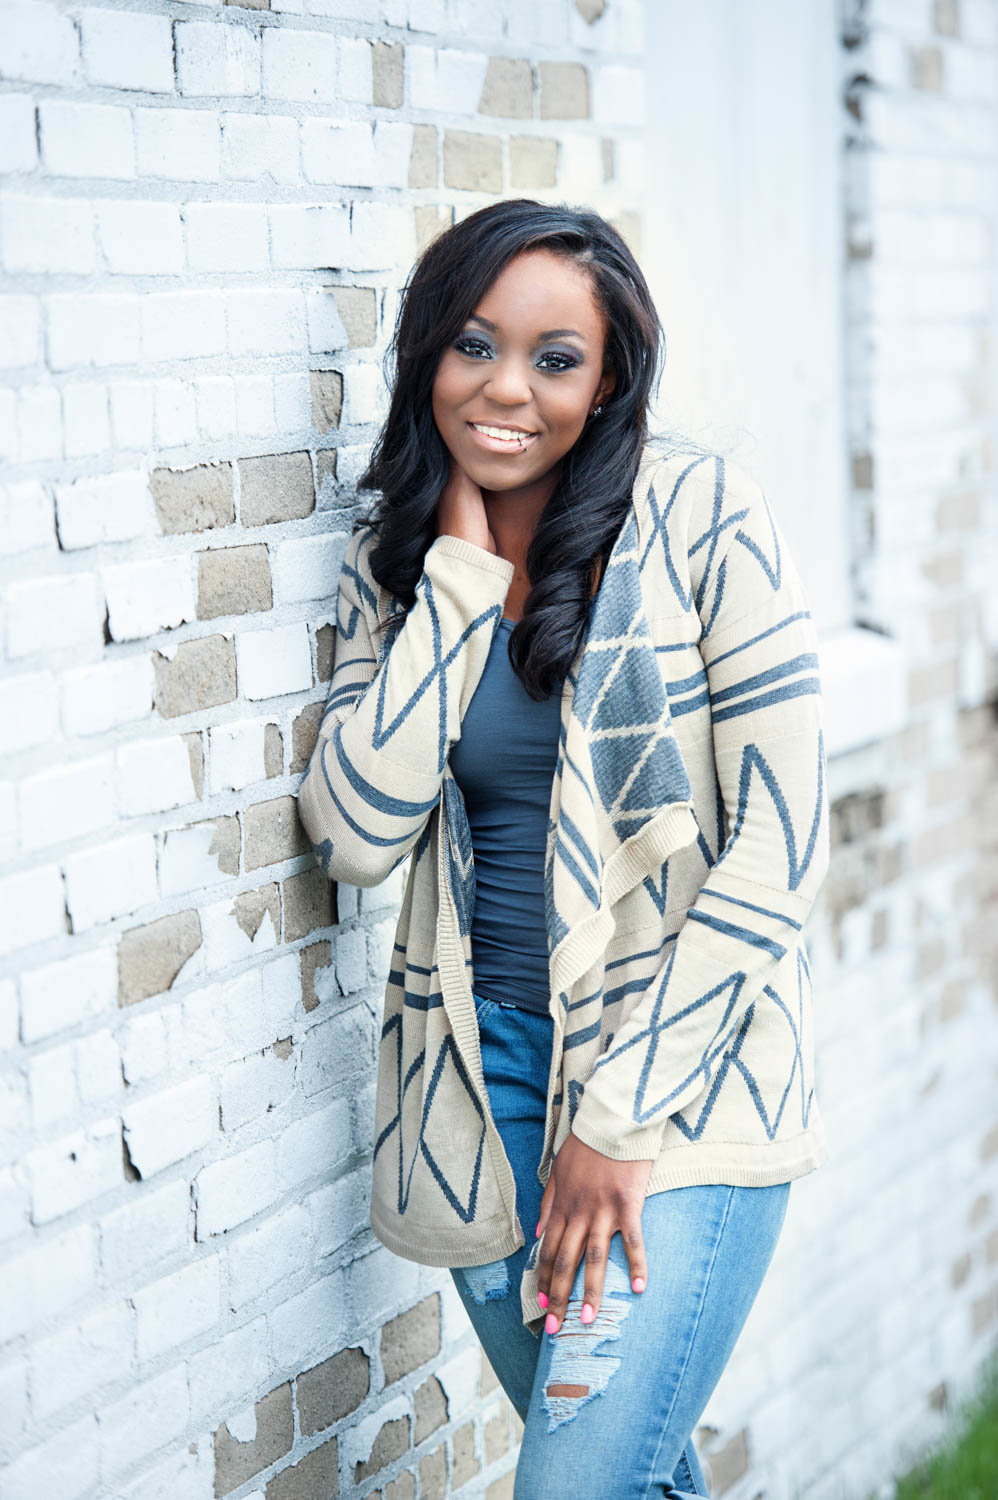 Casual senior picture of African American girl in sweater, smiling